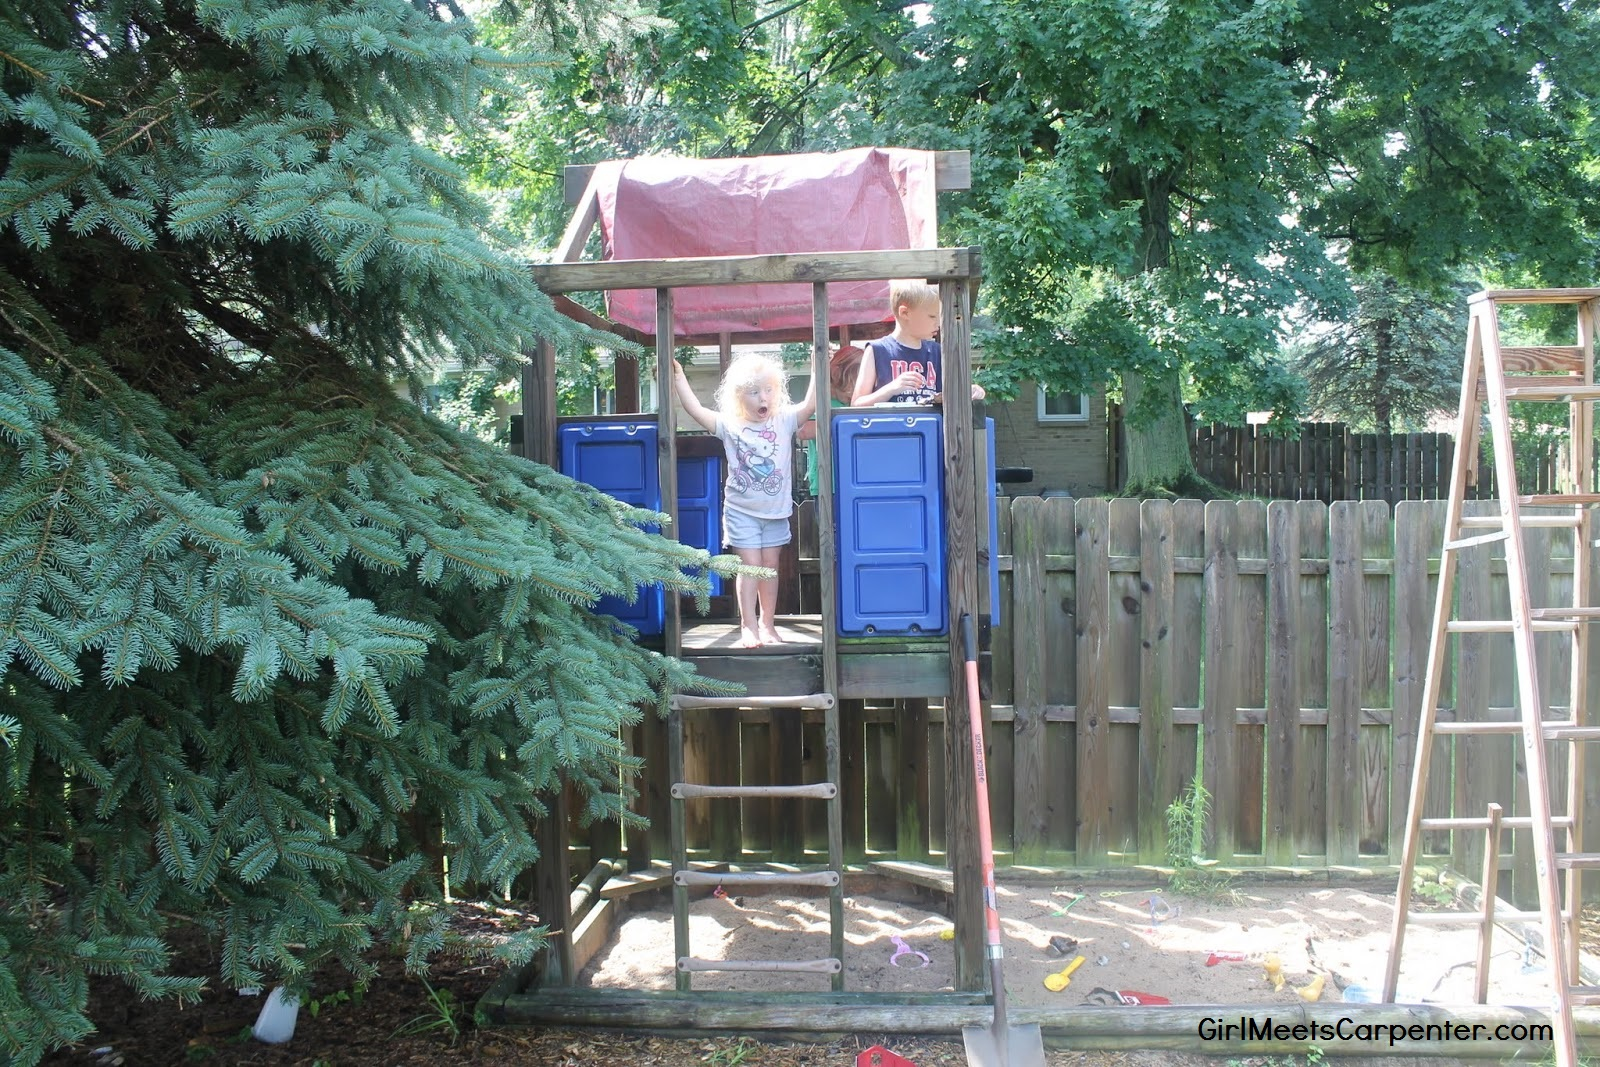 2 From Backyard Swing Set To American Ninja Warrior Course By Girl Meets  Carpenter Featured On